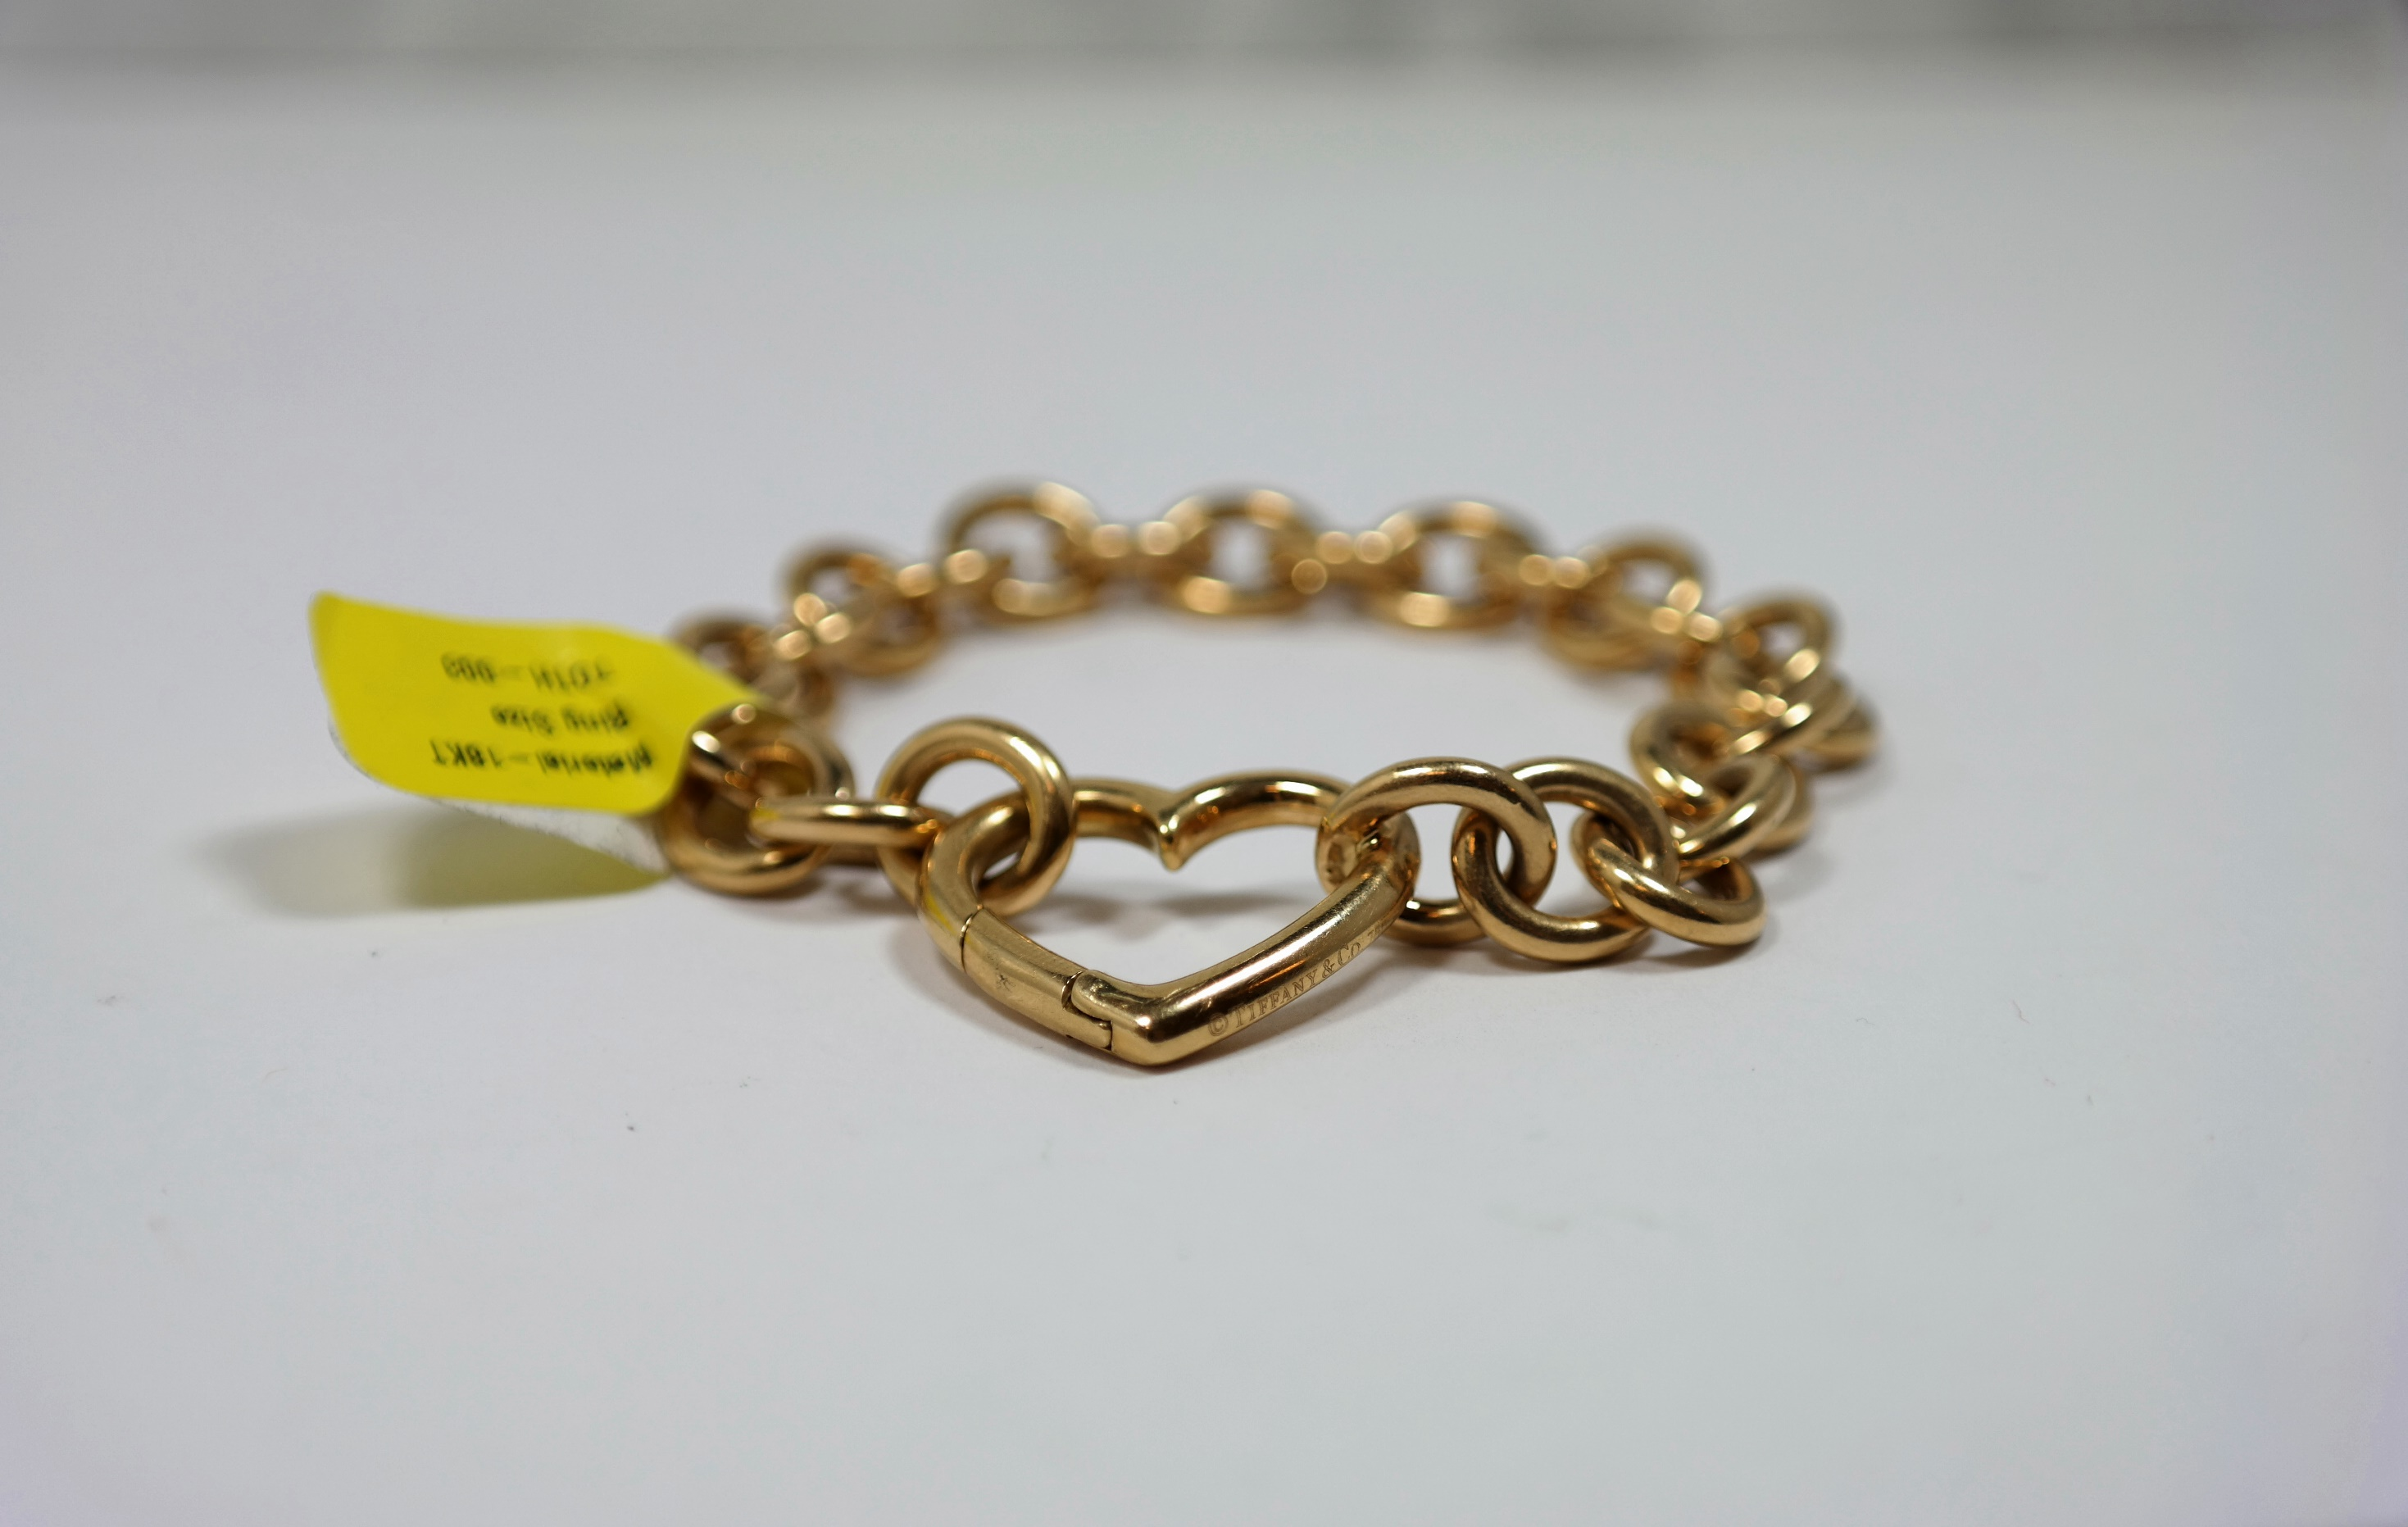 with lock express cash stolen gold bracelet gate product heart